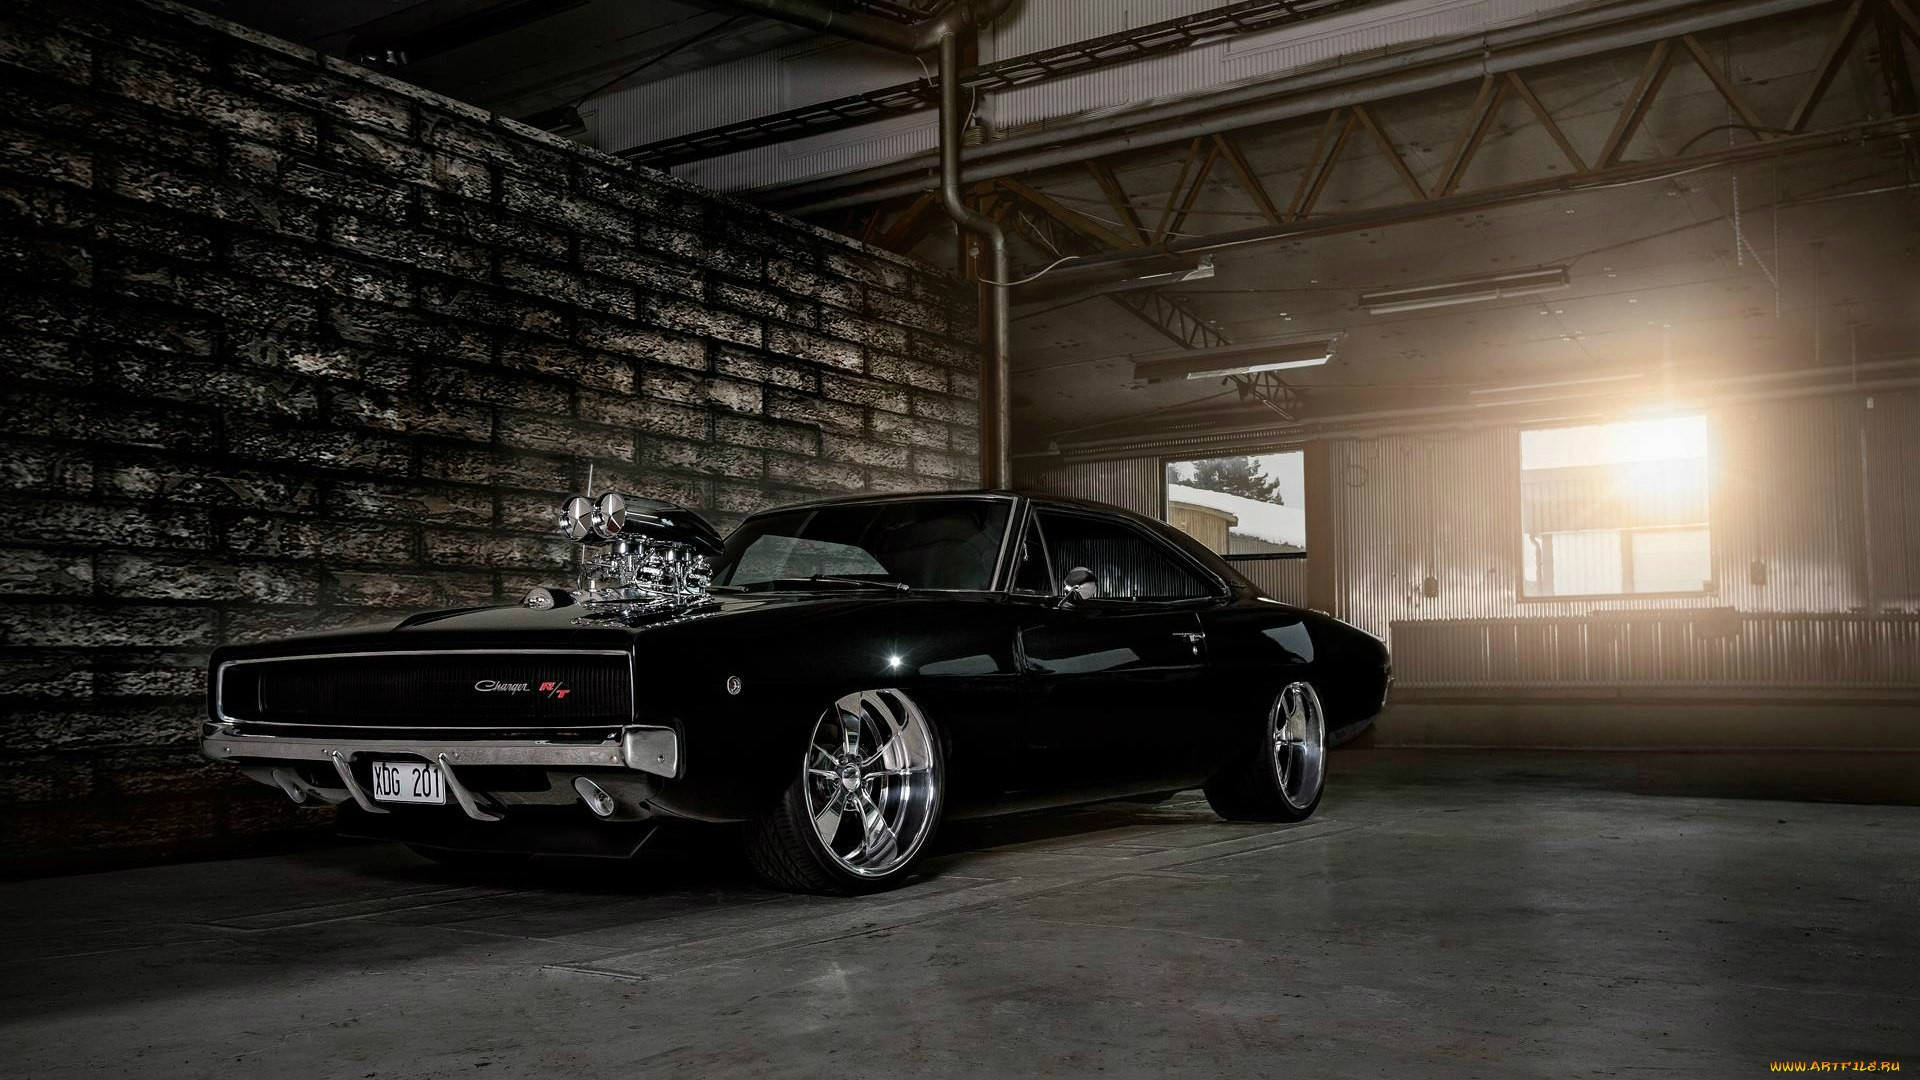 Dodge Charger Fast And Furious Wallpaper Vibhvkw Engine Information 1920x1080